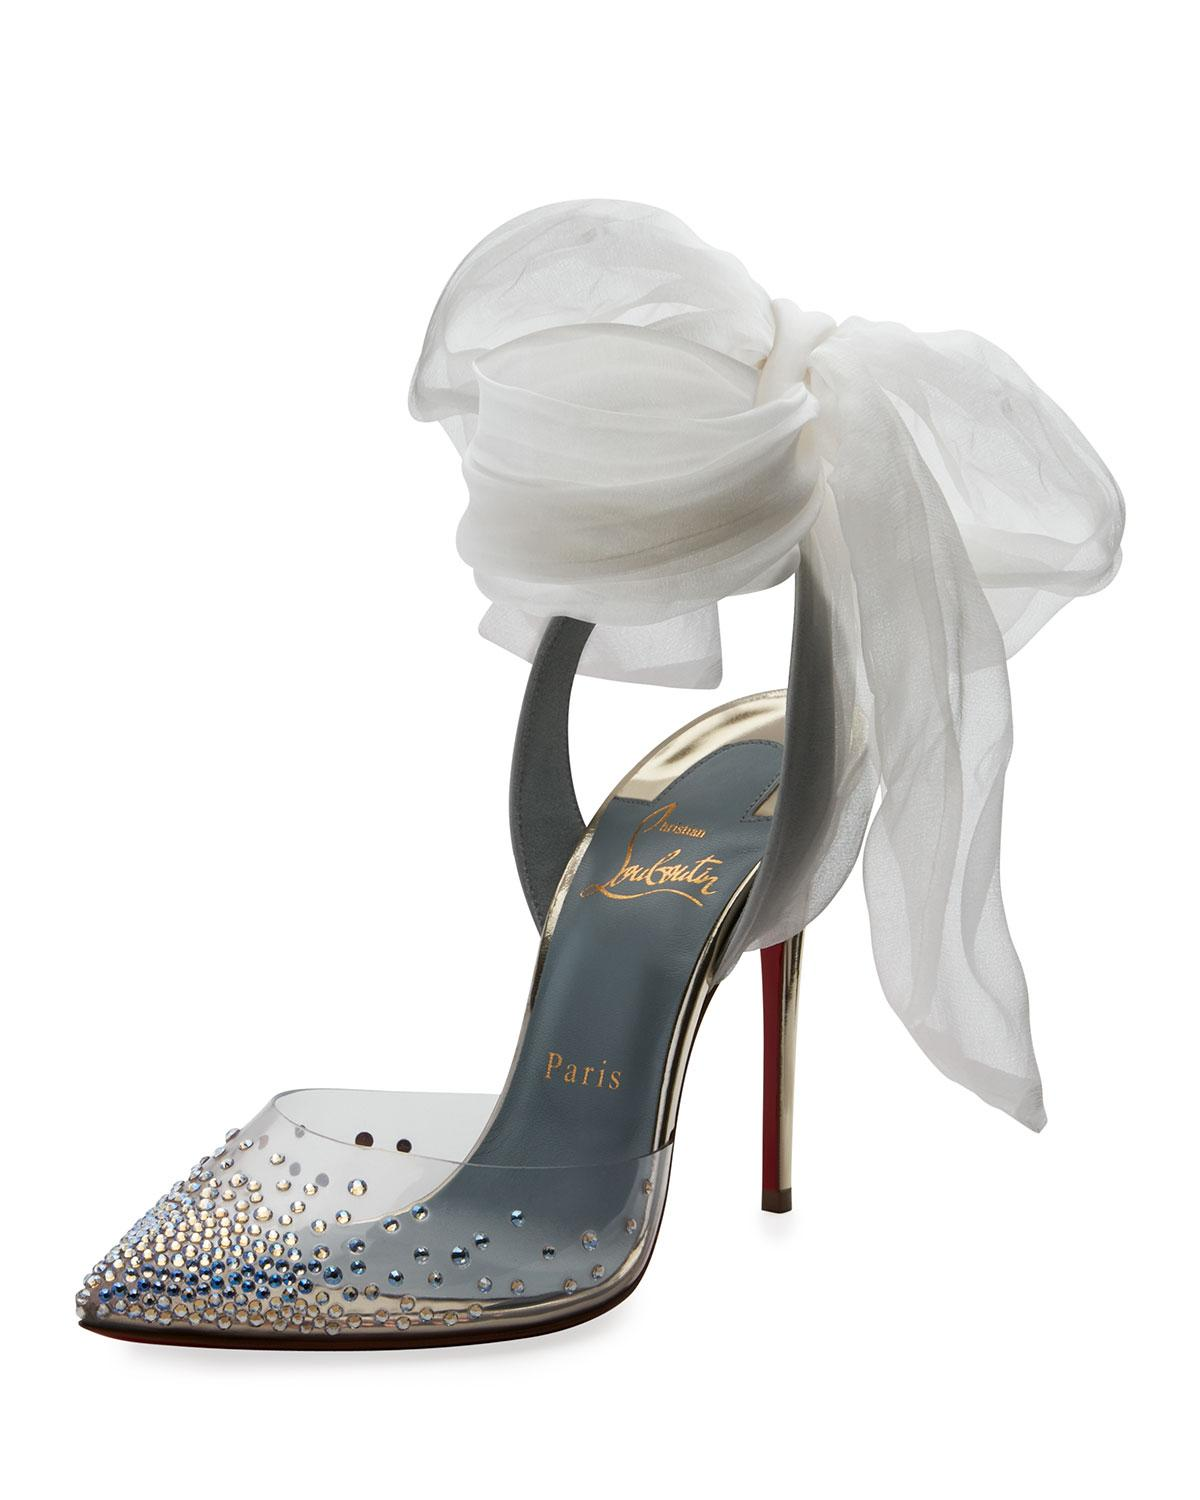 6c102ff4239 Christian Louboutin Miragirl Ankle-Wrap Red Sole Pumps In Gold ...